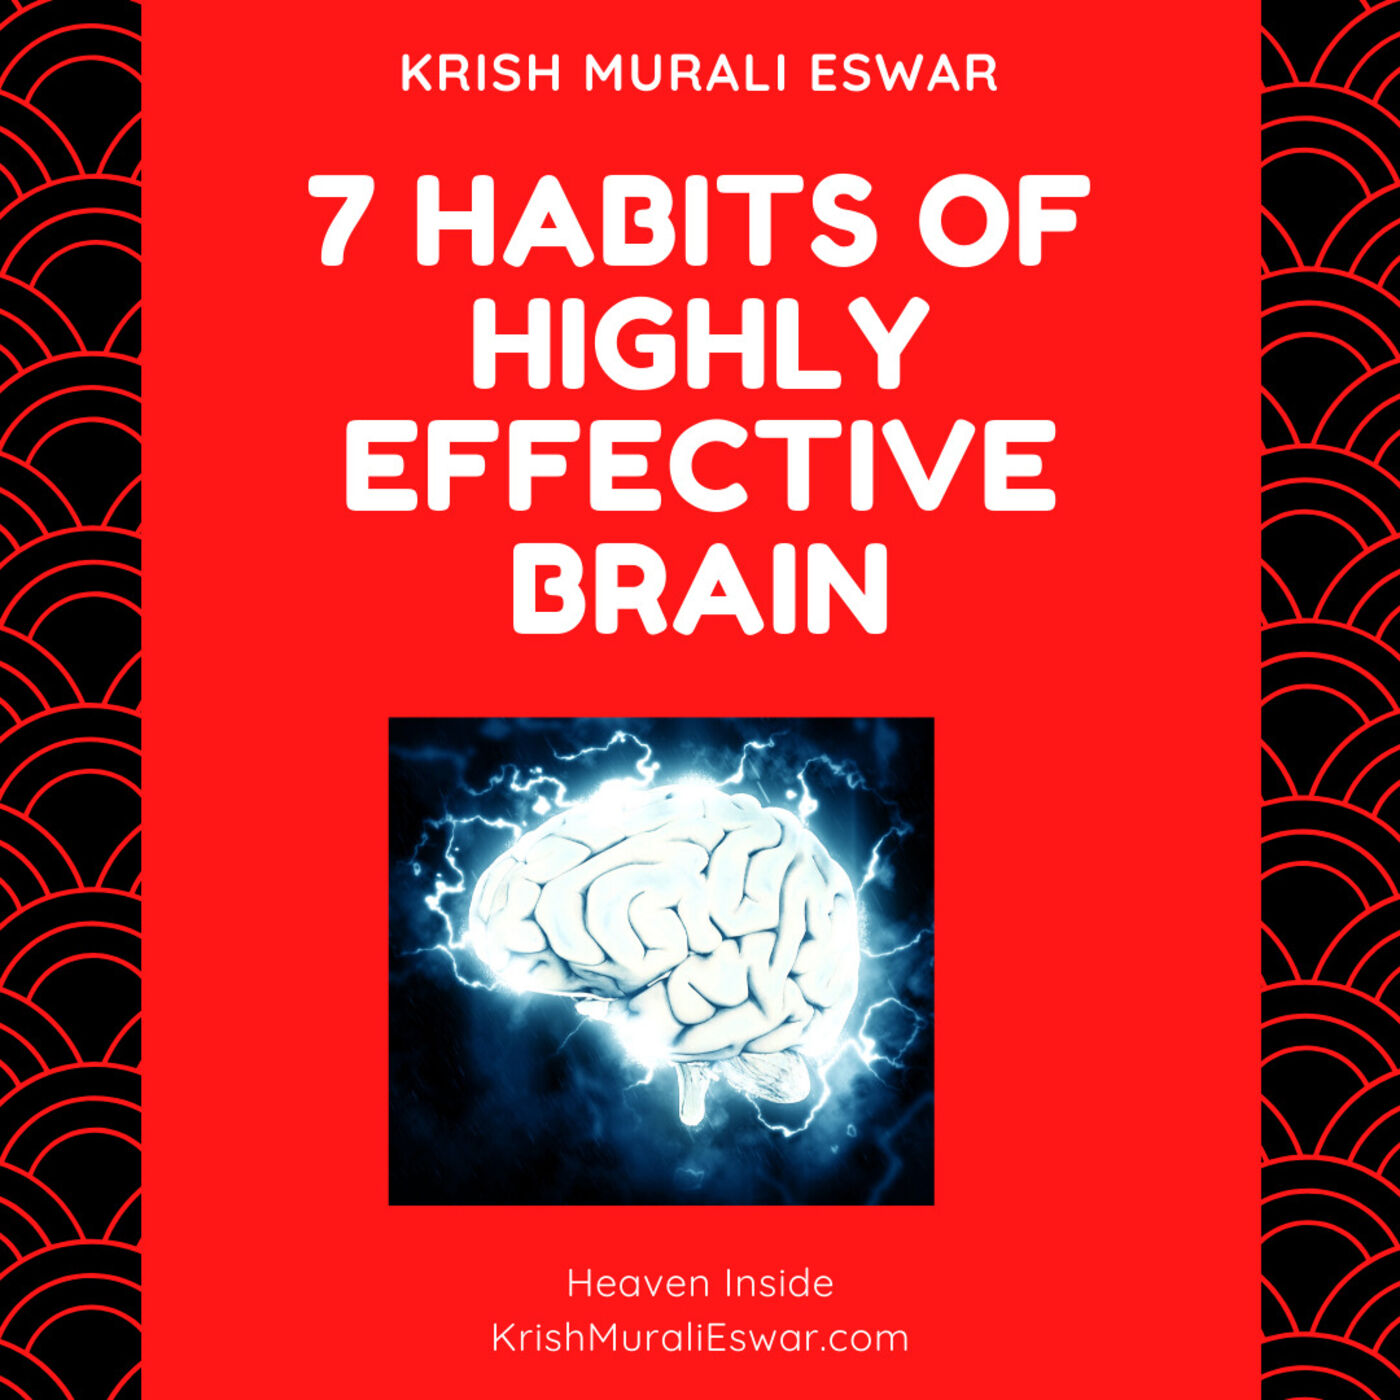 091 7 Habits of Highly Effective Brain